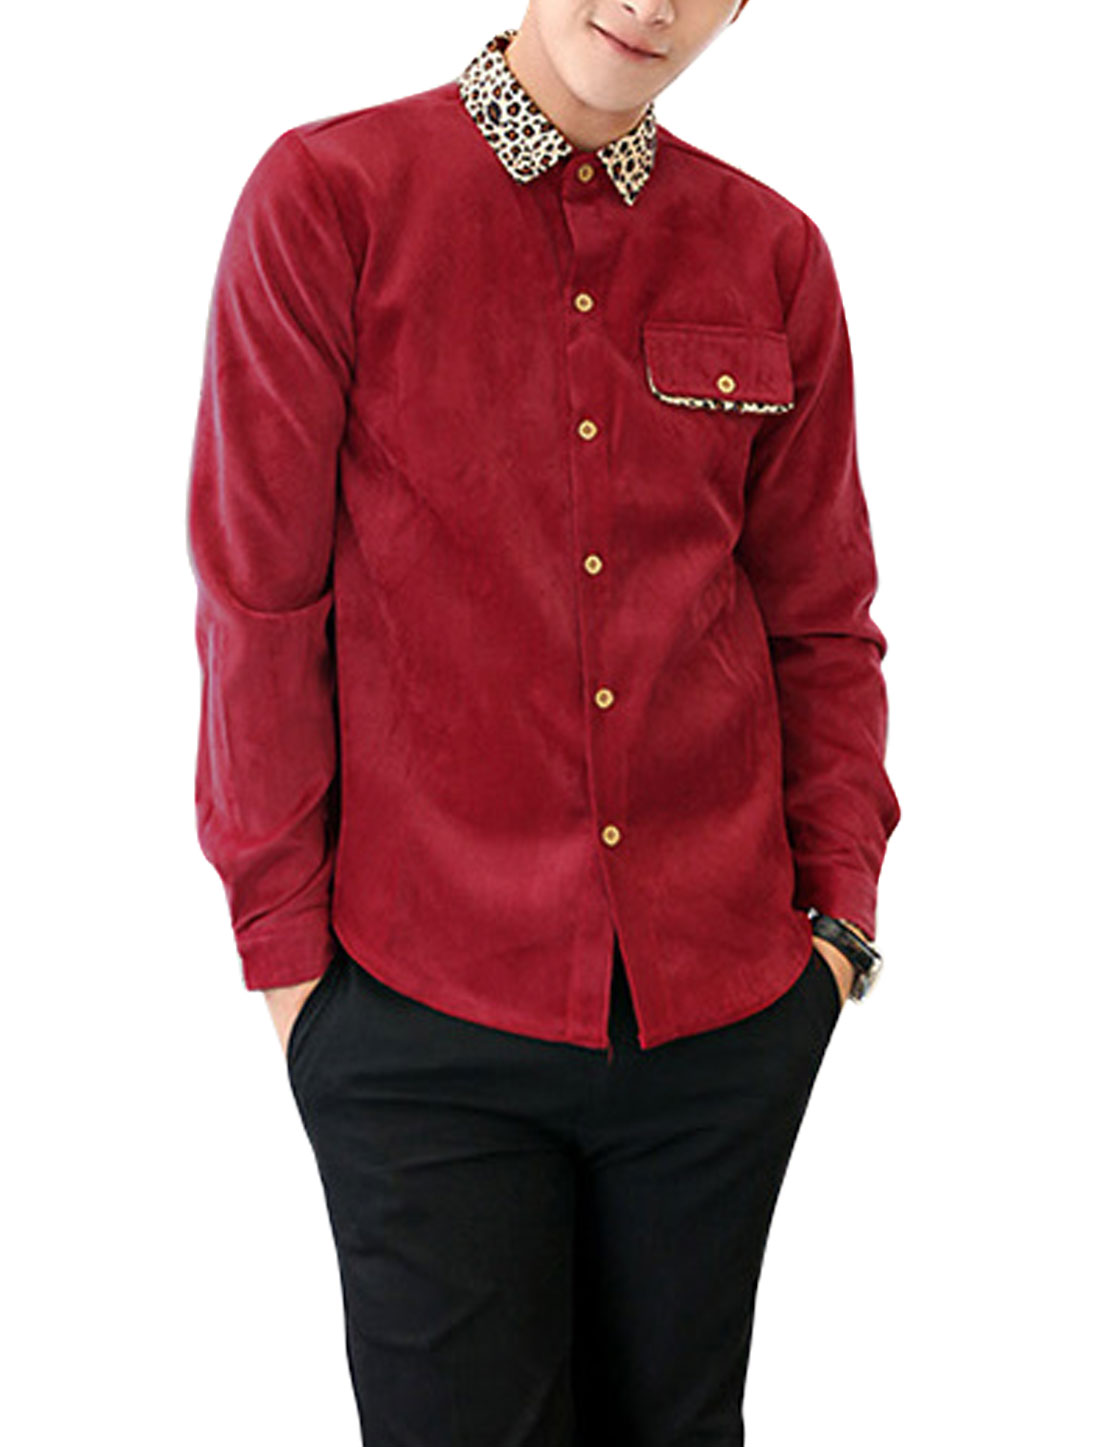 New Style Point Collar Button Closure Front Casual Corduroy Shirt for Men Burgundy M